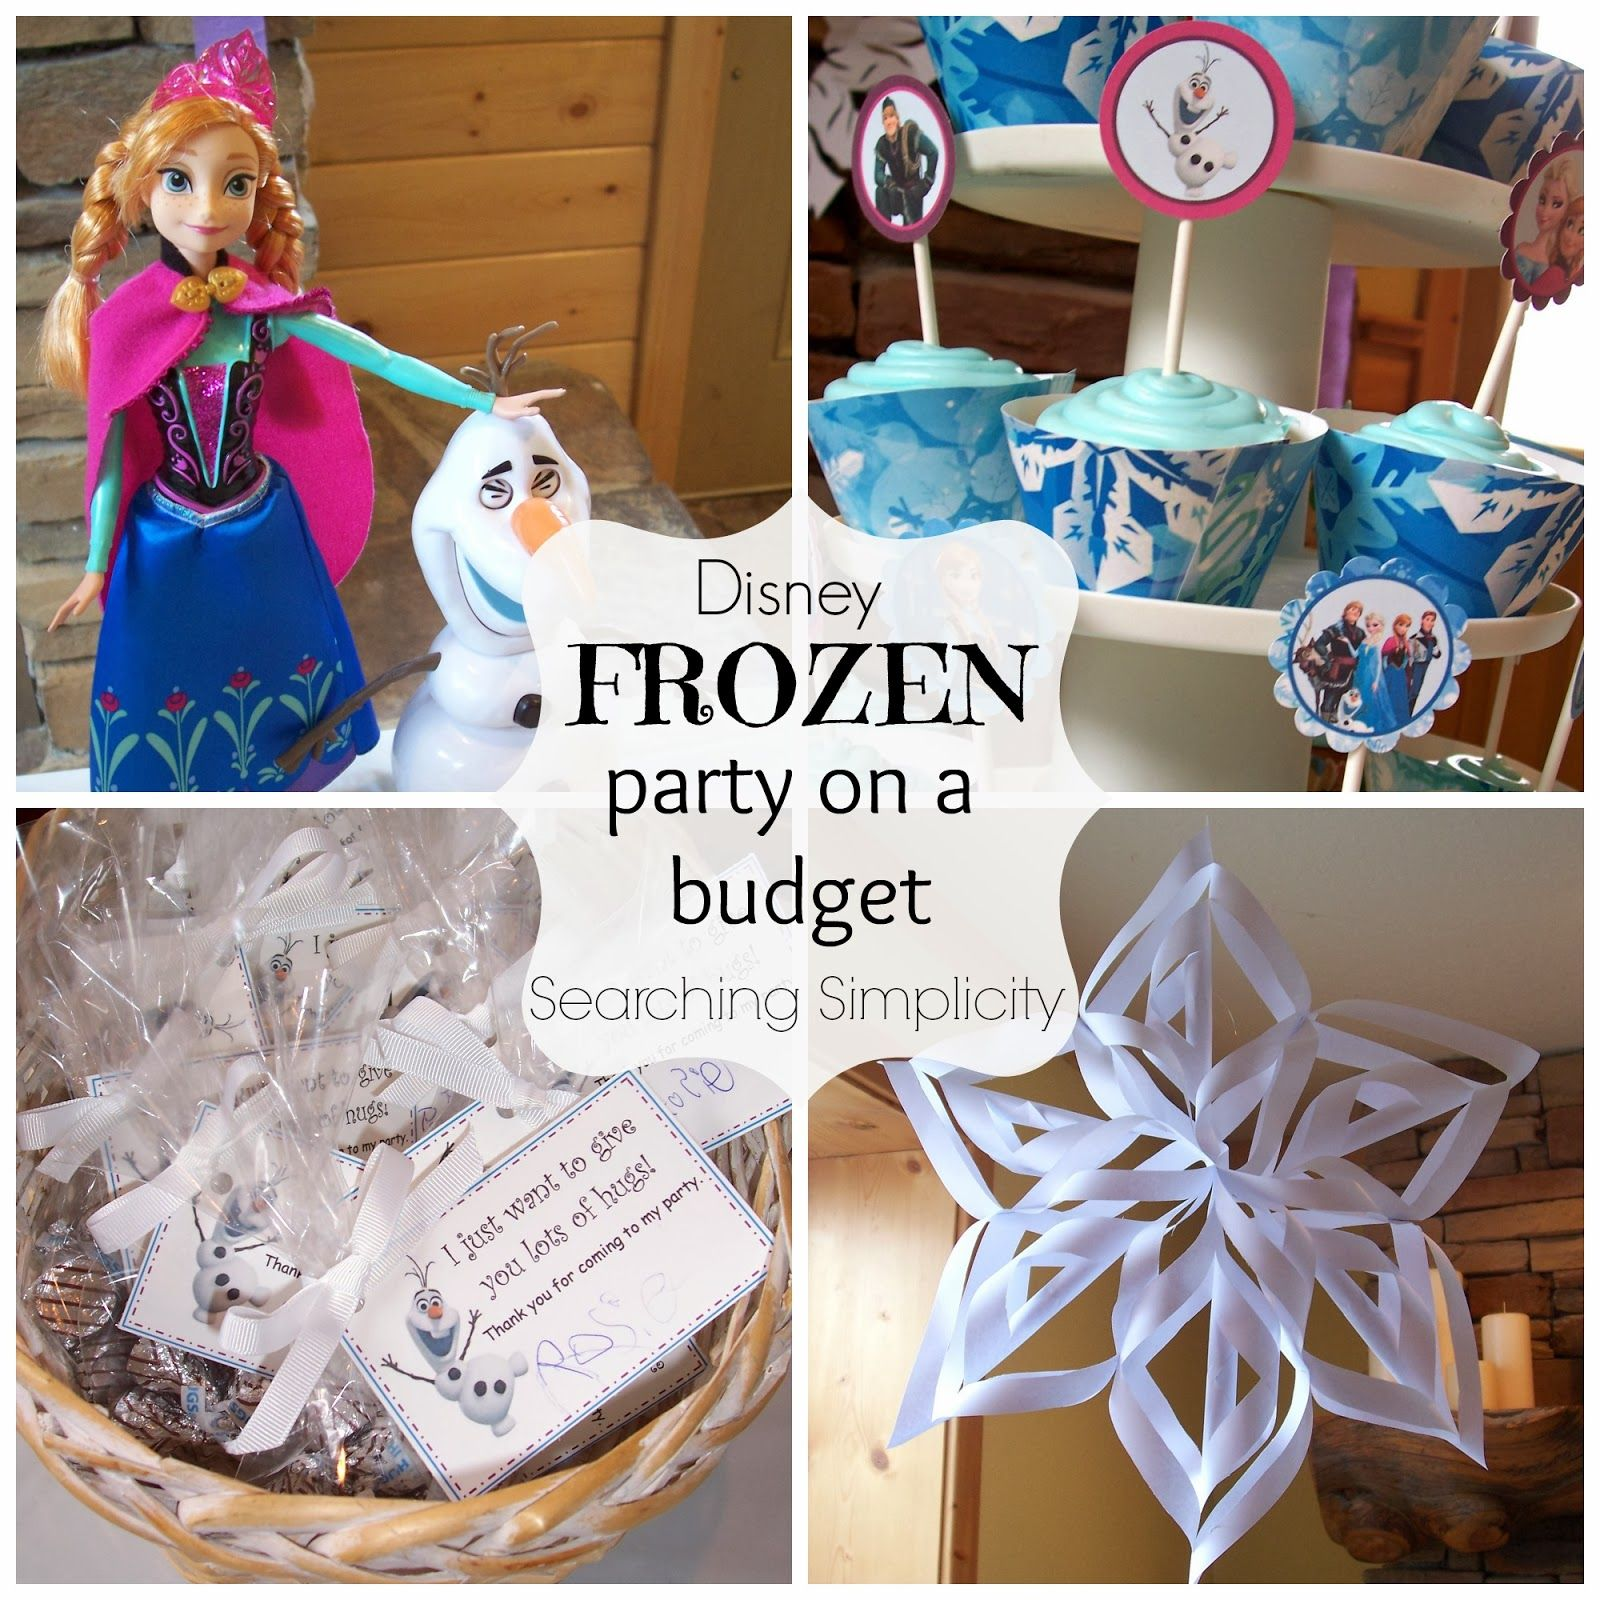 Disney Frozen Birthday Party Activities This is a repost from my